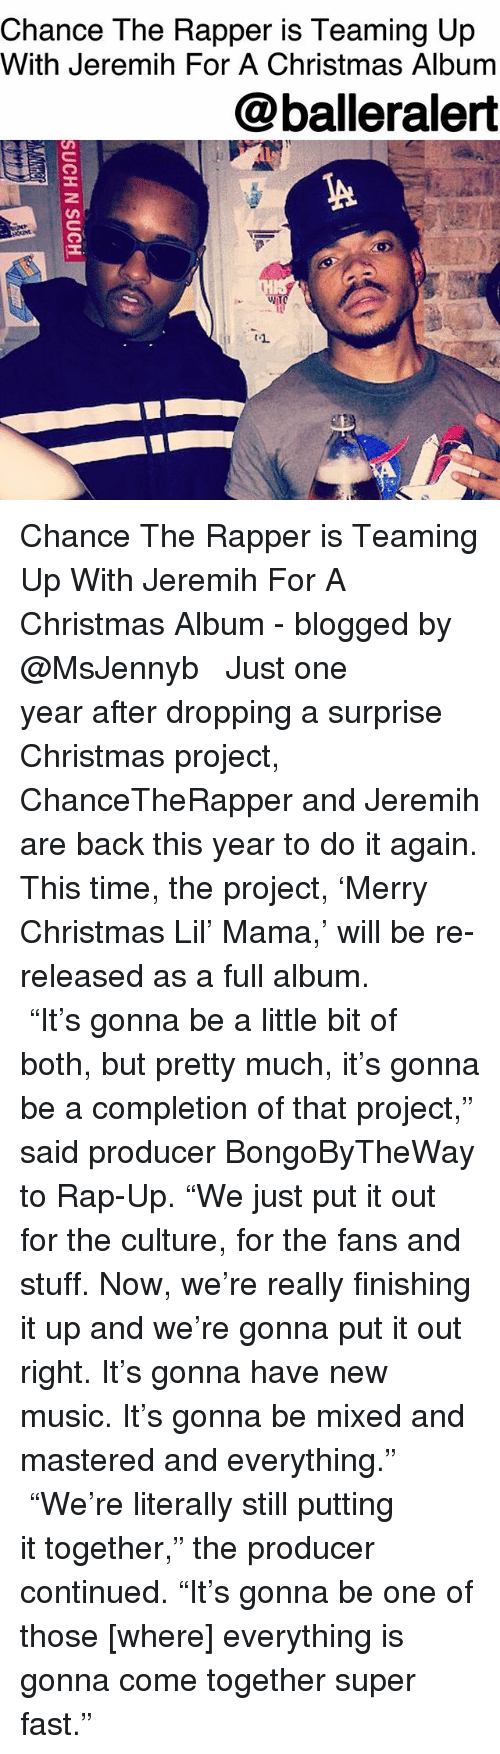 """jeremih: Chance The Rapper is Teaming Up  With Jeremih For A Christmas Album  @balleralert Chance The Rapper is Teaming Up With Jeremih For A Christmas Album - blogged by @MsJennyb ⠀⠀⠀⠀⠀⠀⠀ ⠀⠀⠀⠀⠀⠀⠀ Just one year after dropping a surprise Christmas project, ChanceTheRapper and Jeremih are back this year to do it again. This time, the project, 'Merry Christmas Lil' Mama,' will be re-released as a full album. ⠀⠀⠀⠀⠀⠀⠀ ⠀⠀⠀⠀⠀⠀⠀ """"It's gonna be a little bit of both, but pretty much, it's gonna be a completion of that project,"""" said producer BongoByTheWay to Rap-Up. """"We just put it out for the culture, for the fans and stuff. Now, we're really finishing it up and we're gonna put it out right. It's gonna have new music. It's gonna be mixed and mastered and everything."""" ⠀⠀⠀⠀⠀⠀⠀ ⠀⠀⠀⠀⠀⠀⠀ """"We're literally still putting it together,"""" the producer continued. """"It's gonna be one of those [where] everything is gonna come together super fast."""""""